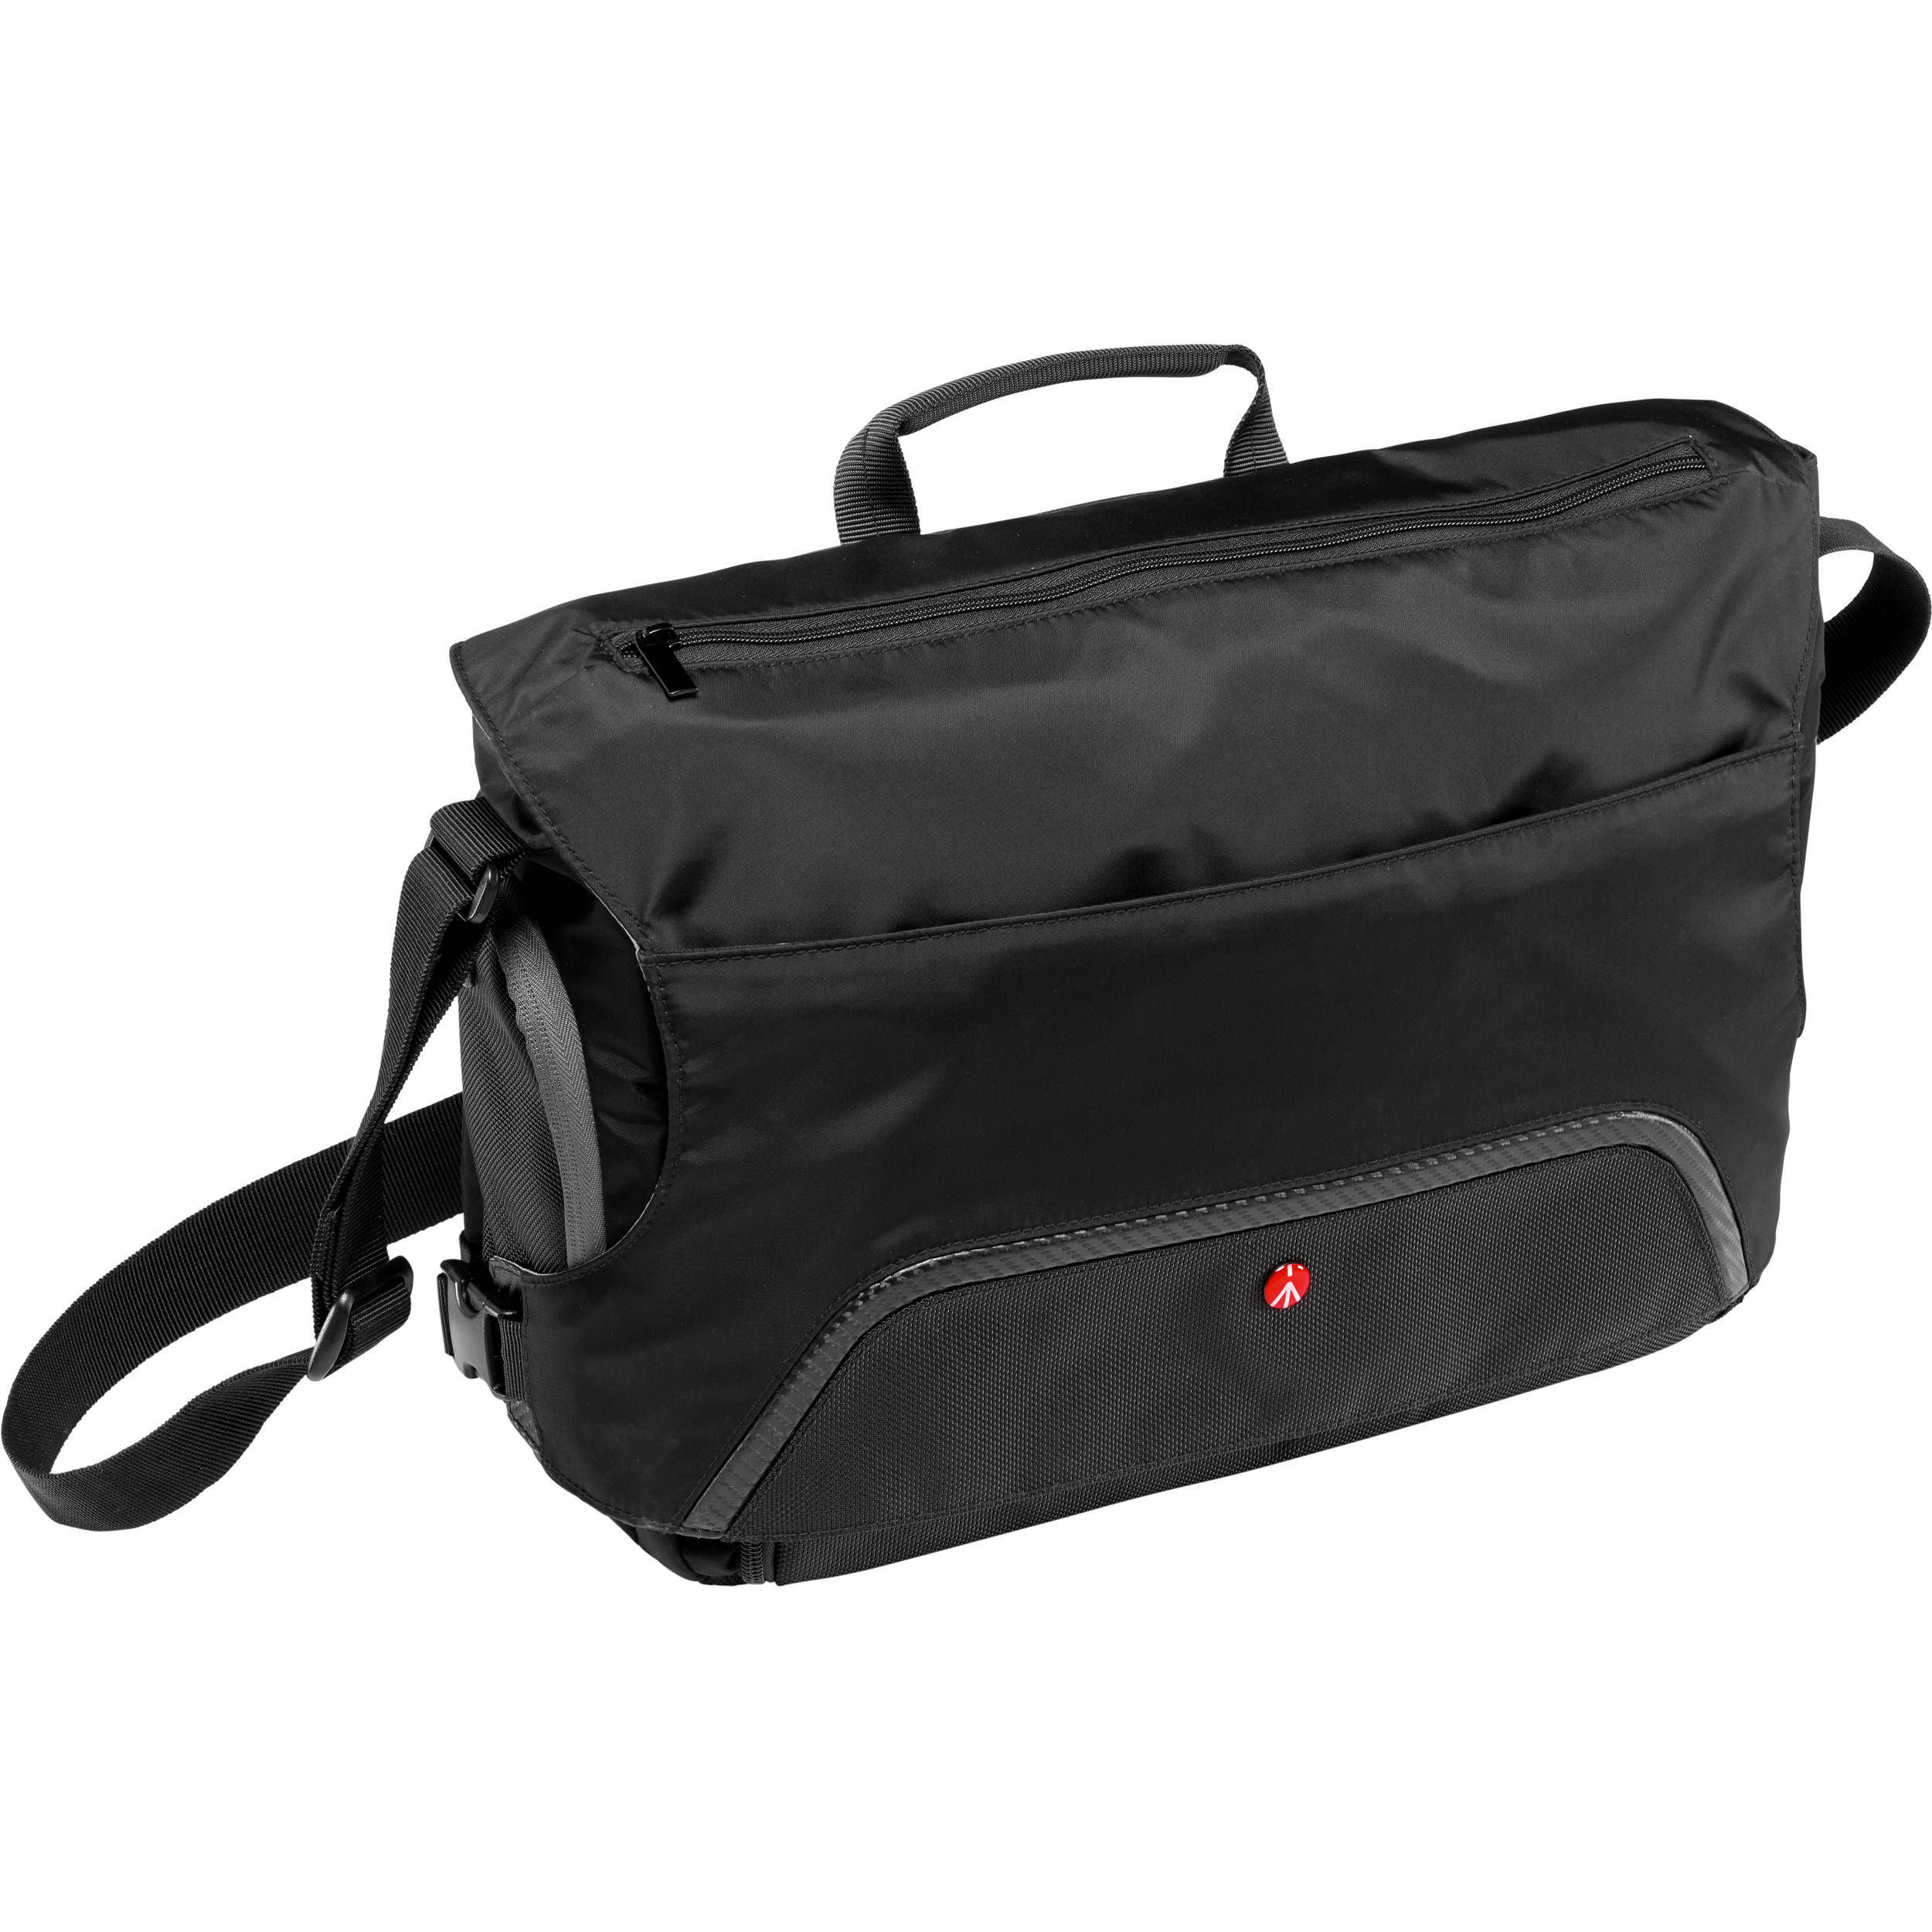 Manfrotto Large Advanced Befree Messenger Bag Black